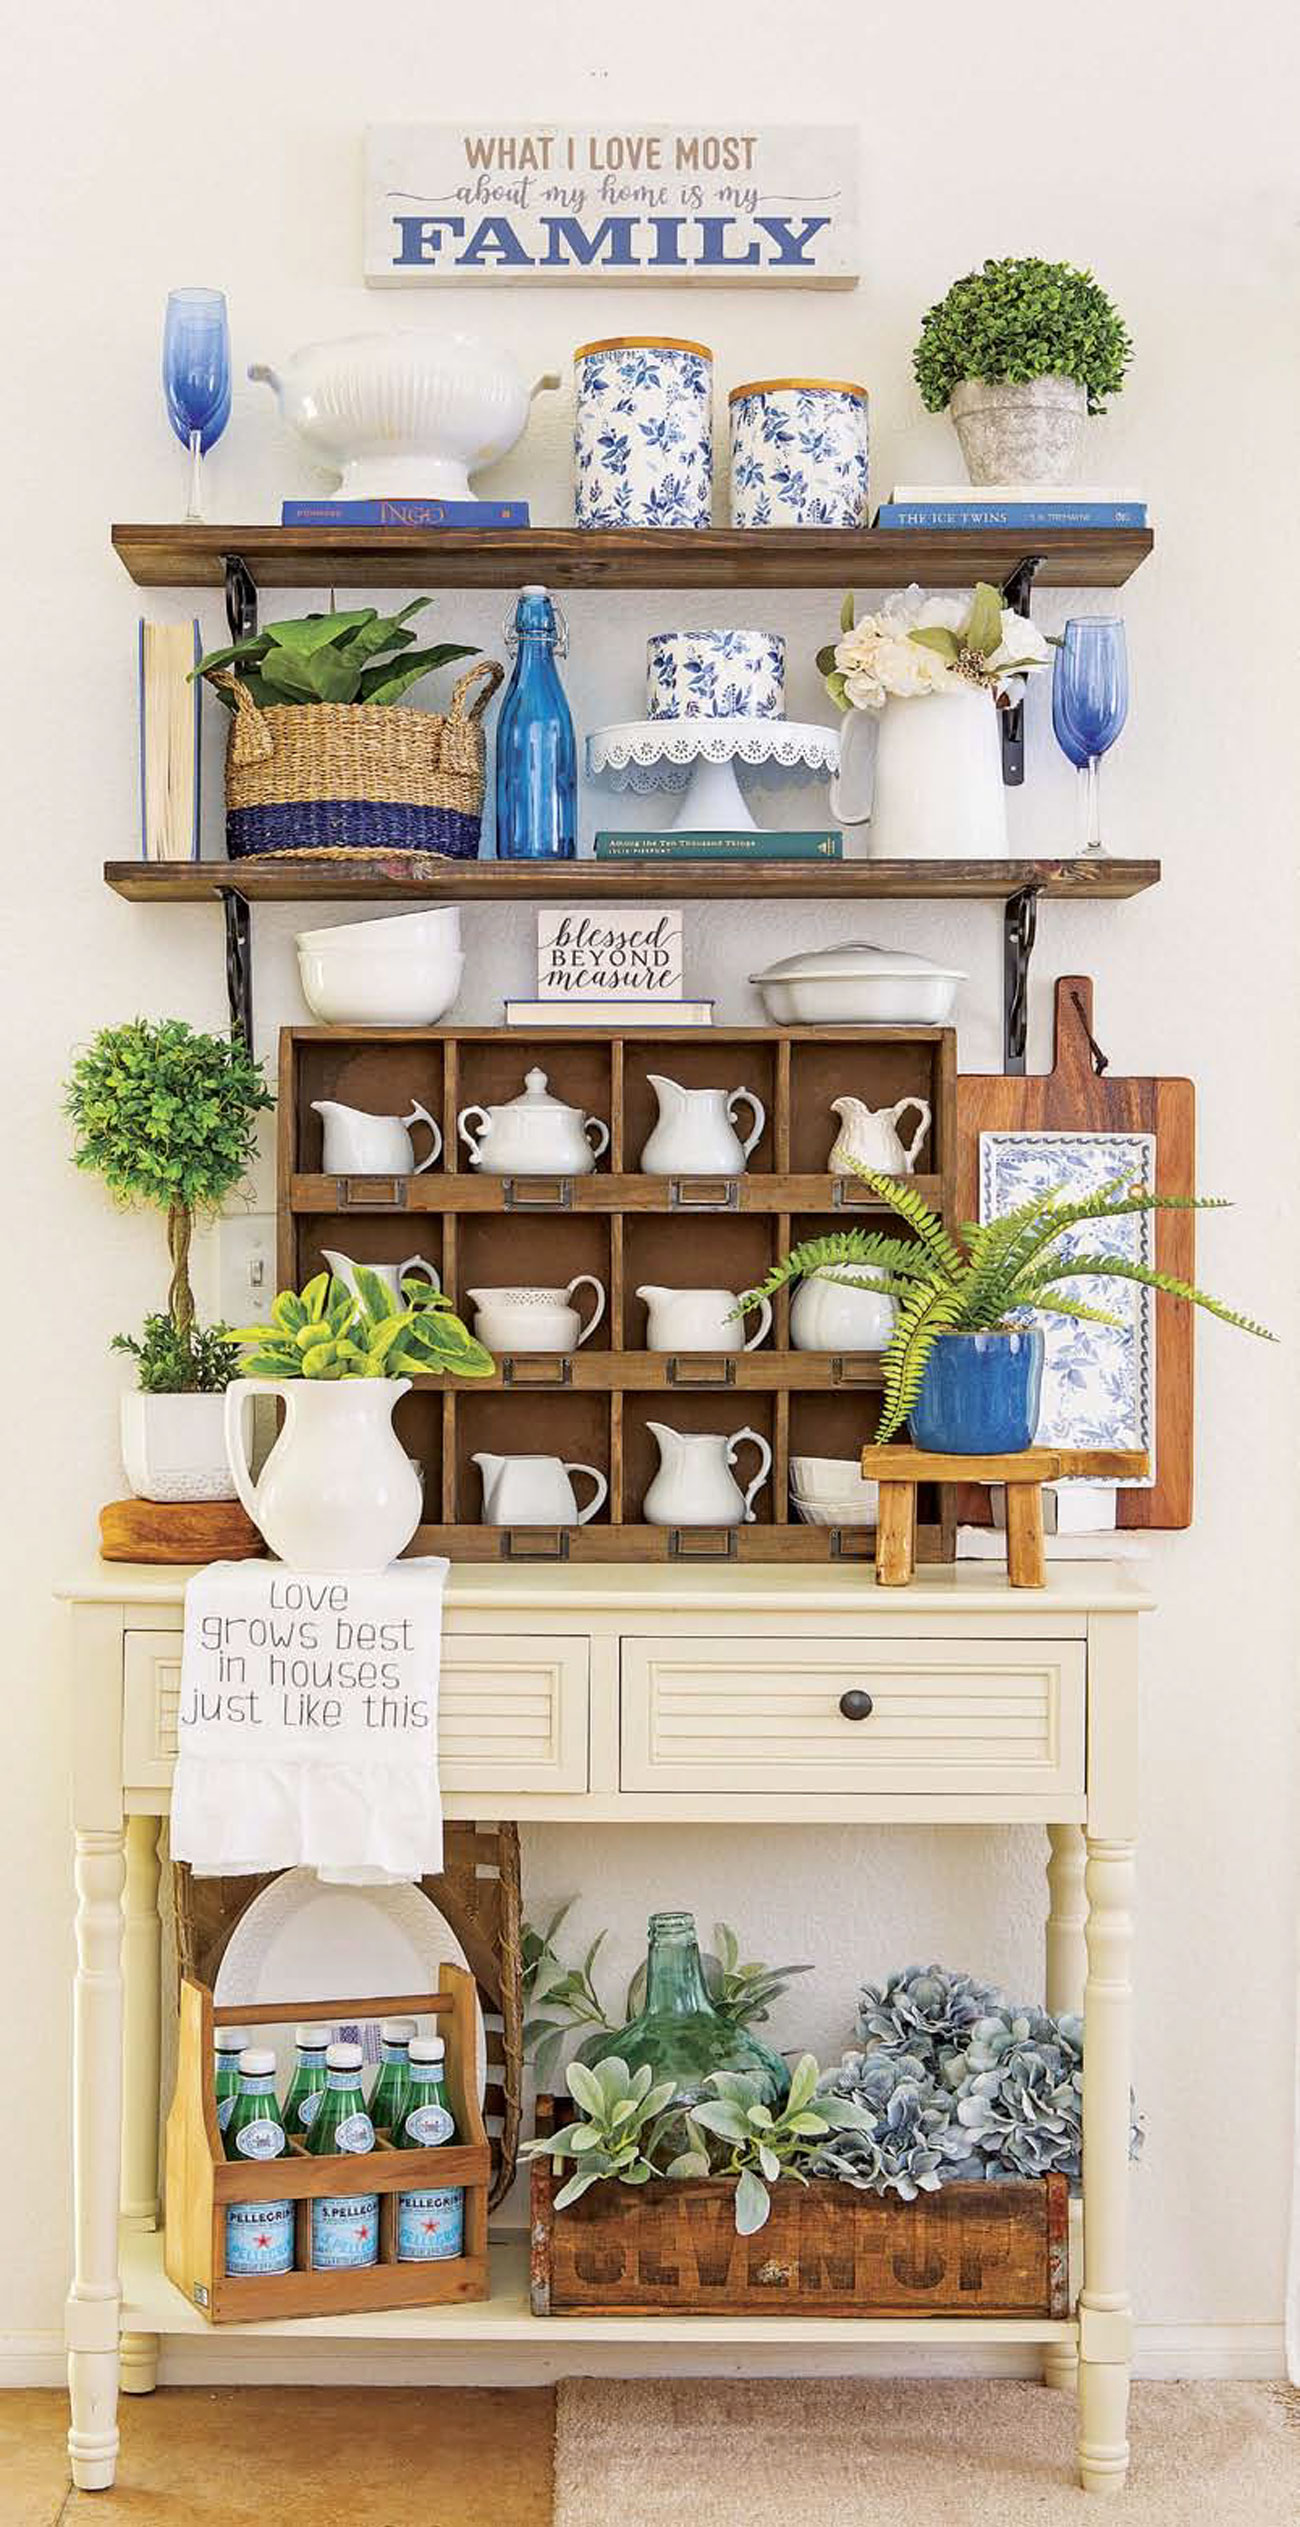 Wooden shelving and a vintage cubby cabinet filled with white cream-and-sugar sets and pops of blue and green.